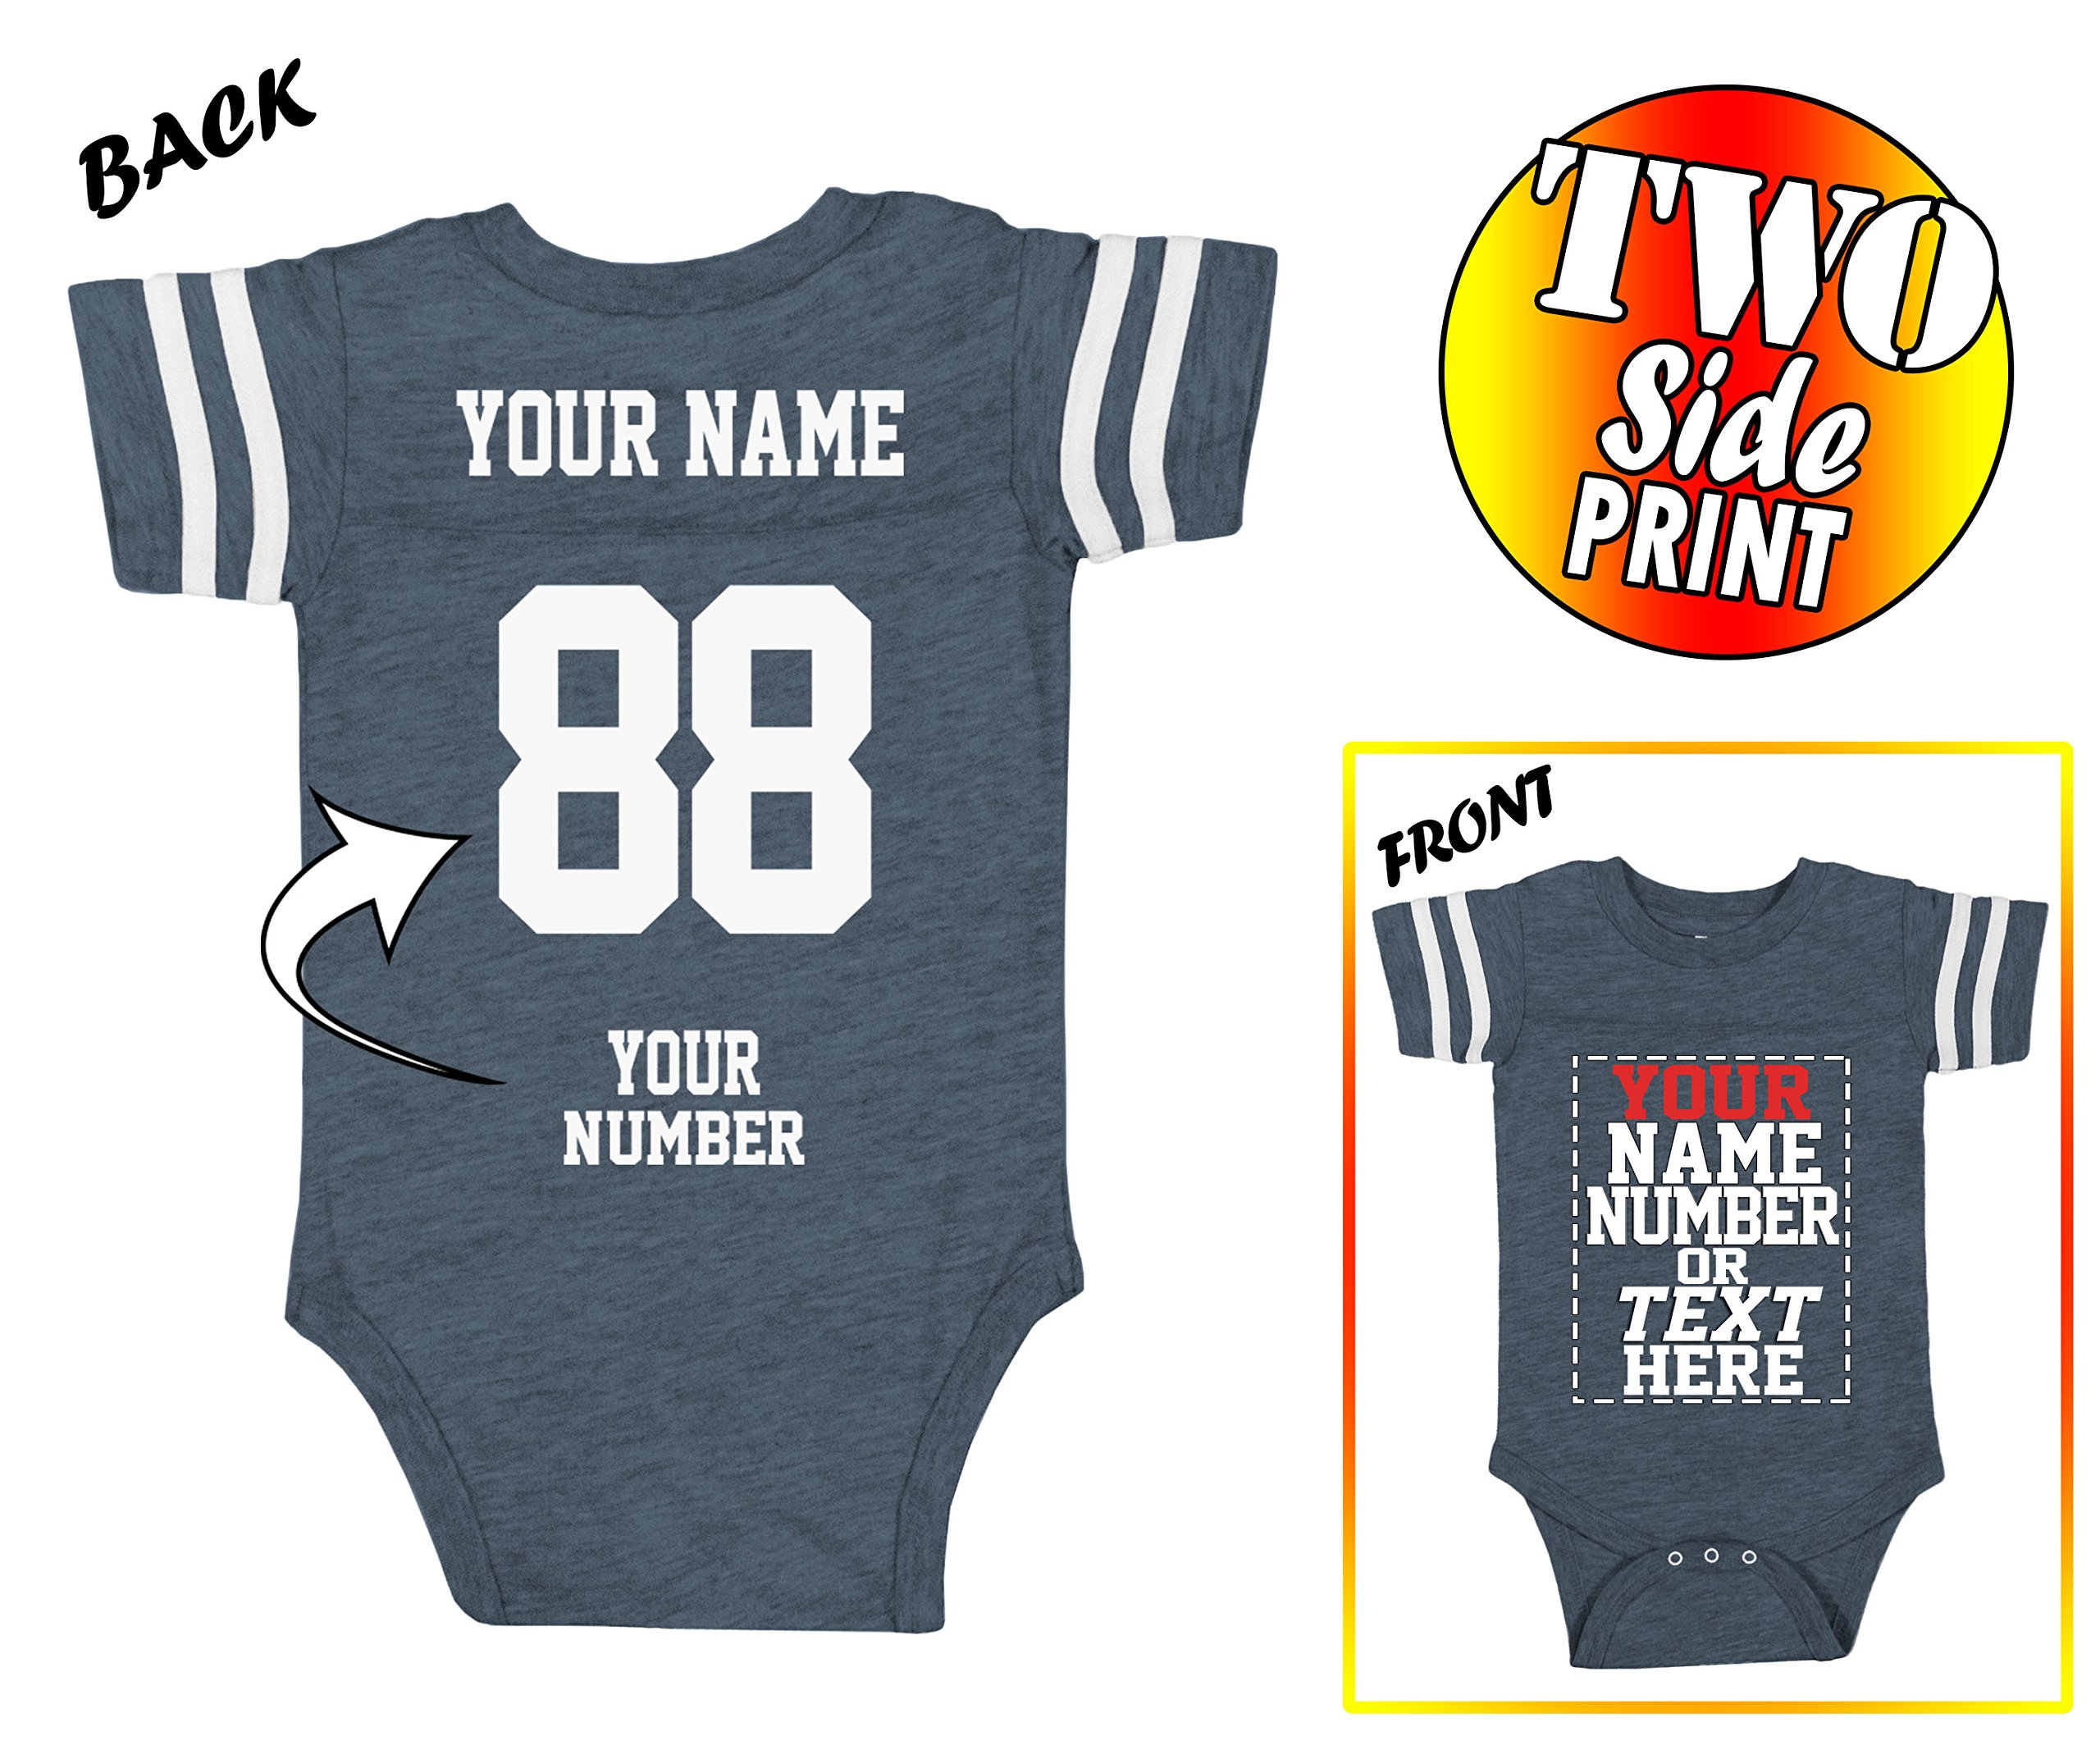 cc7f12a5f4b26 Galleon - Custom Jerseys For Babies - Make Your OWN Jersey Onesie ...